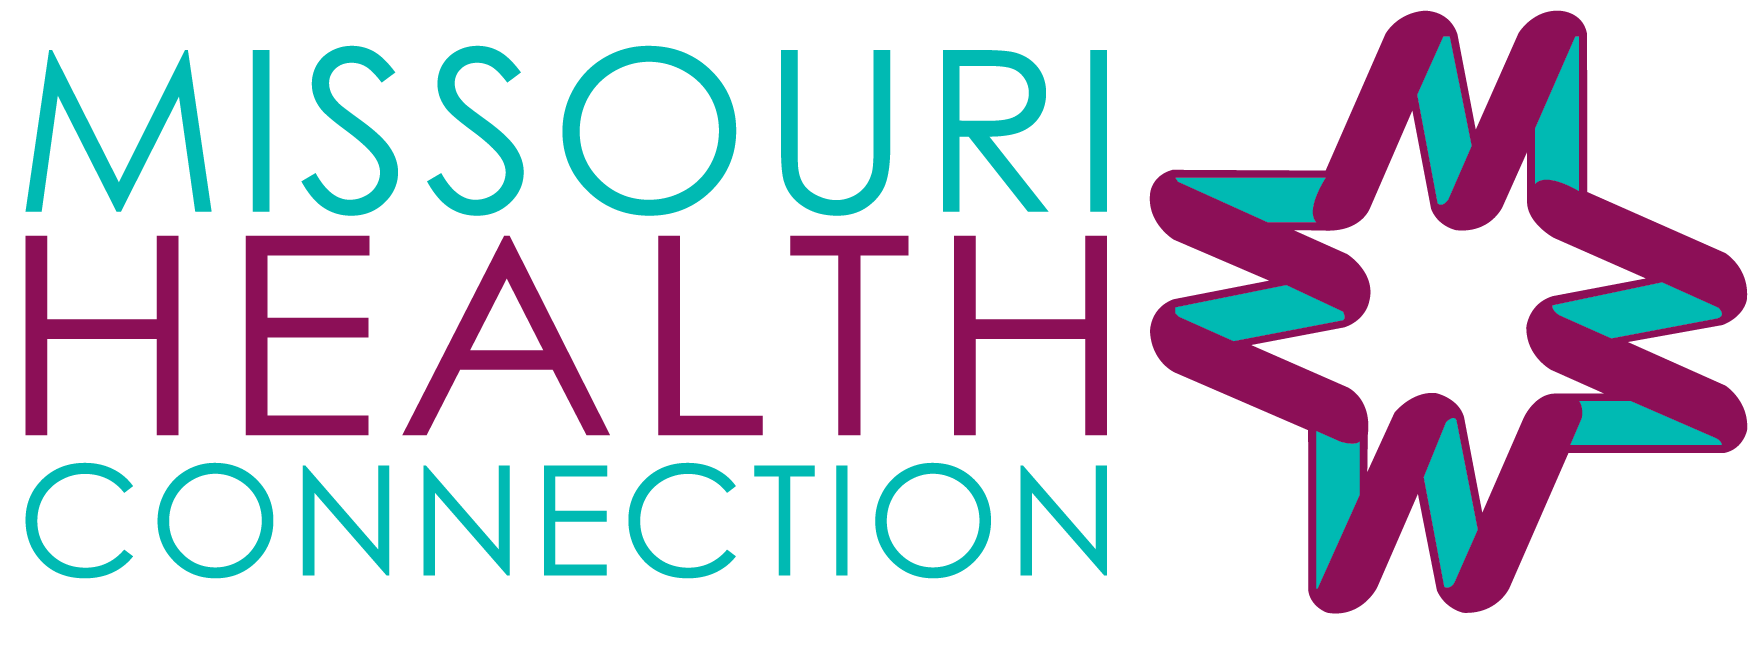 Missouri Health Connection